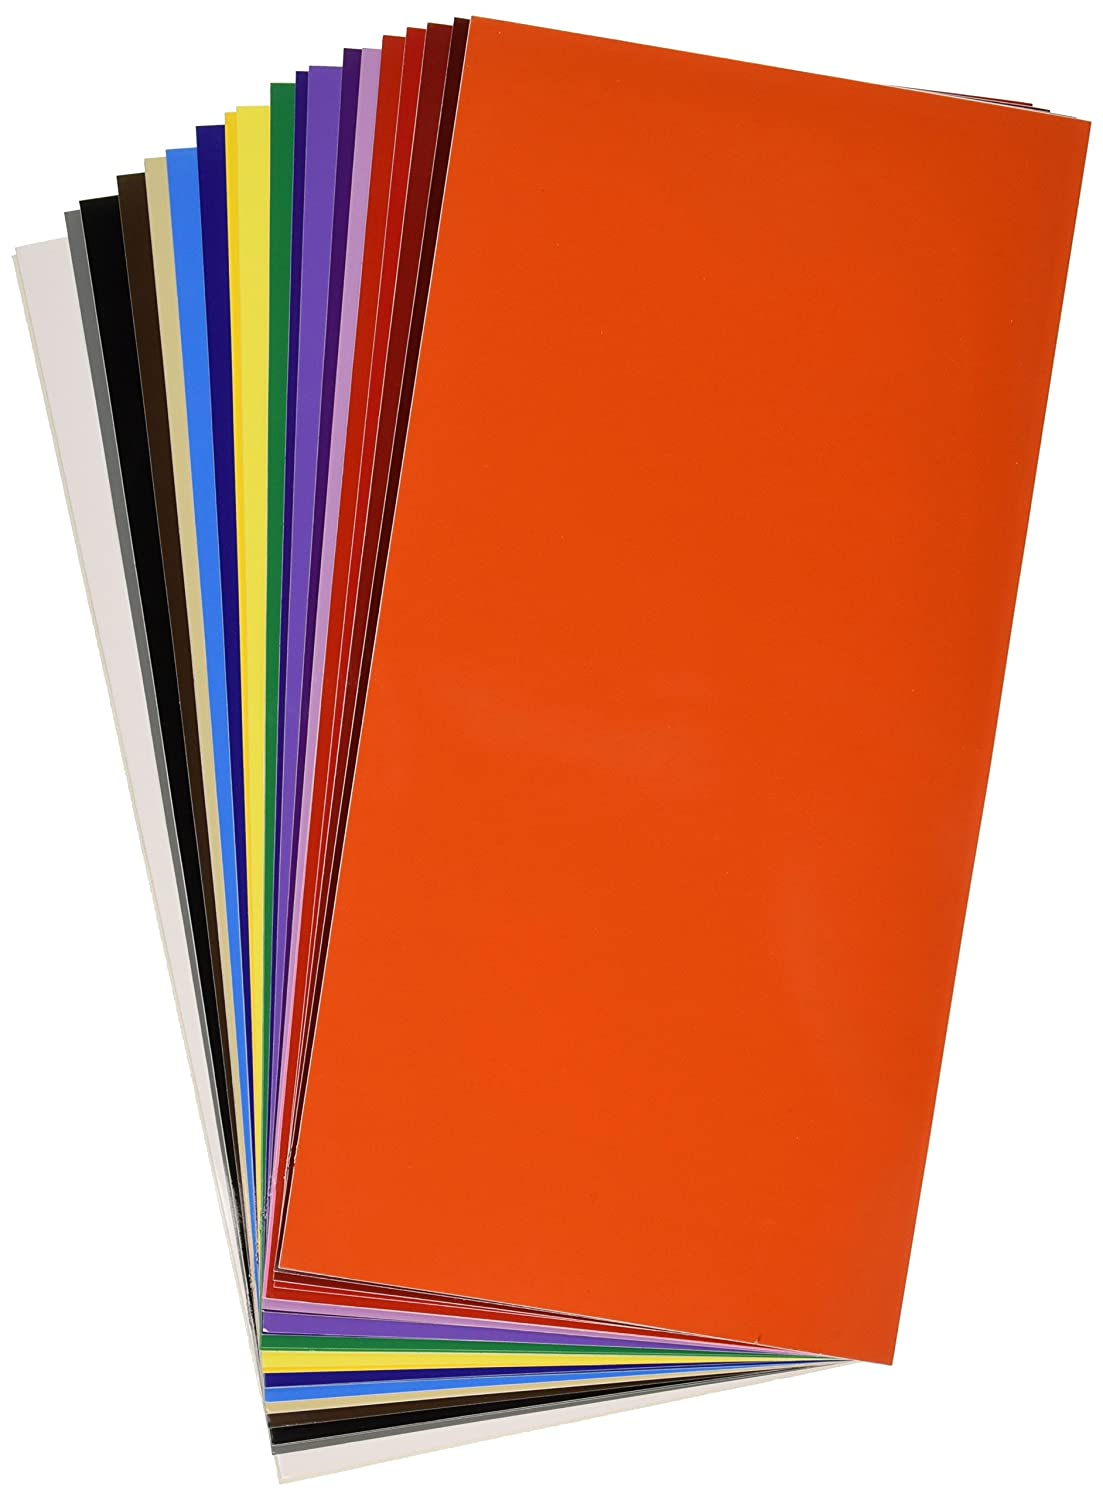 Vinyl ease 6 x 12 30 sheets assorted colors gloss for Vinyl sheets for crafts